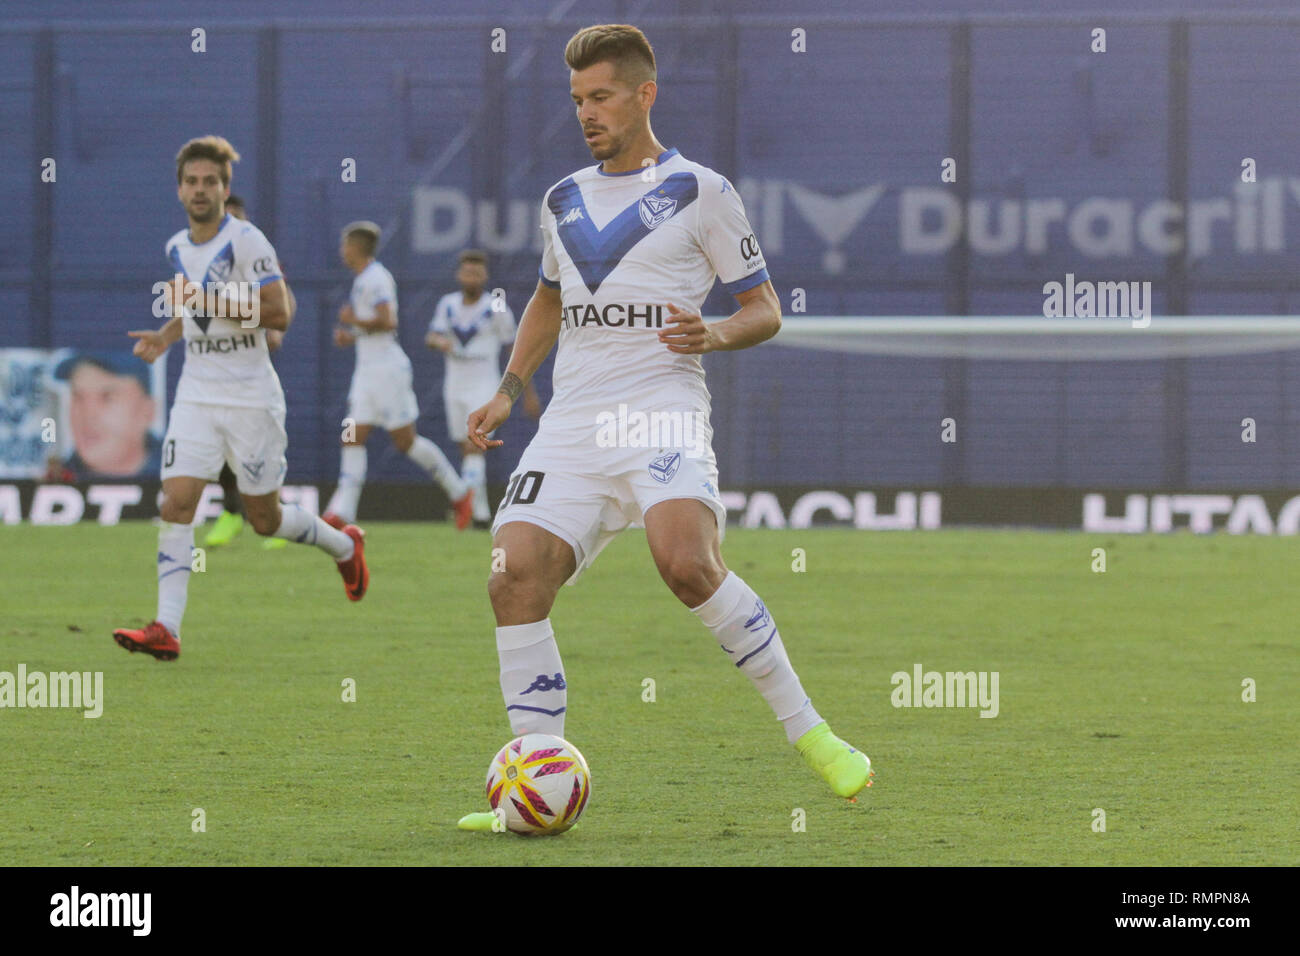 Buenos Aires, Argentina. 15th Feb, 2019. Gaston Gimenez during the match between Vélez Sarsfield e Colon for Superliga Argentina, this friday on José Amalfitani Stadium on Buenos Aires, Argentina. ( Credit: Néstor J. Beremblum/Alamy Live News - Stock Image